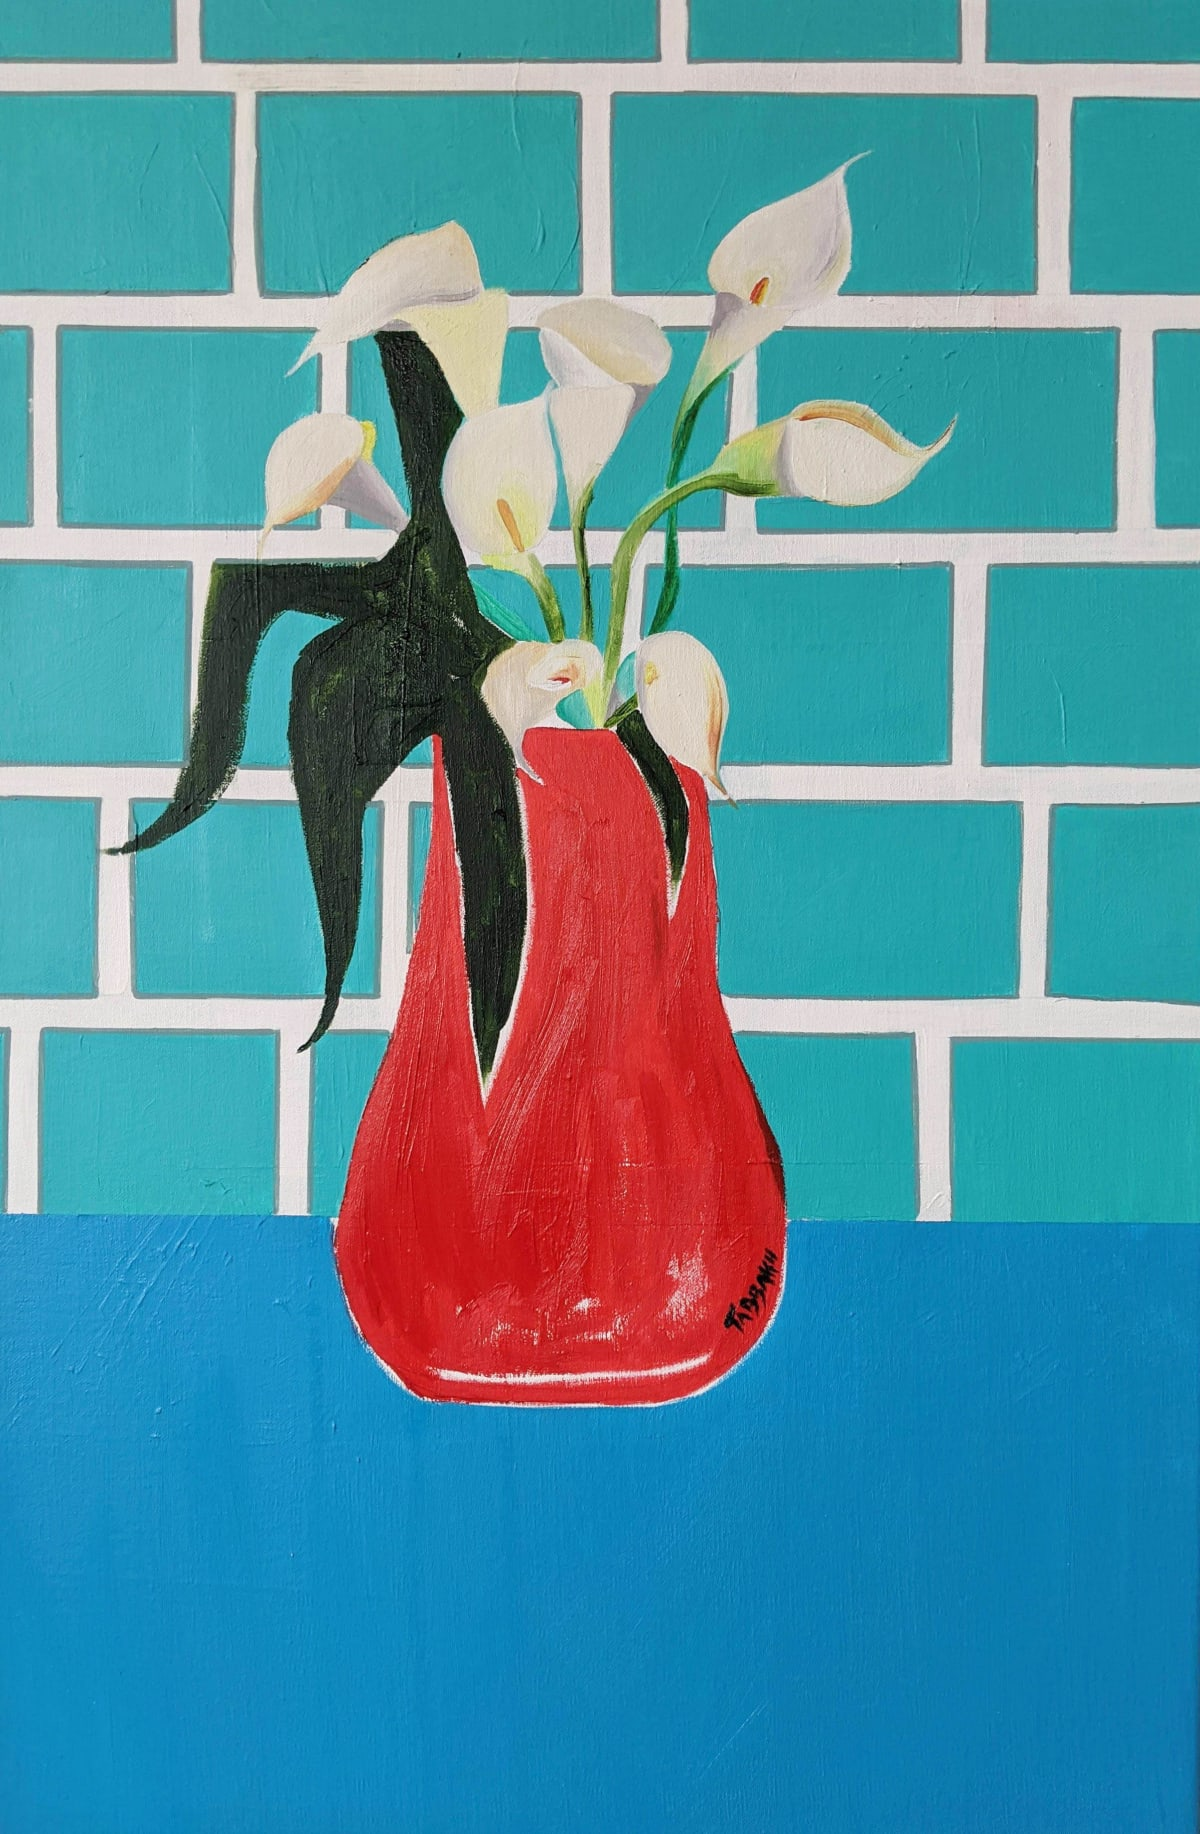 Cathy Tabbakh Dirty Calla Lilies, 2020 Oil, Acrylic and Oil Pastels on Canvas 40 x 60 cm 15 3/4 x 23 5/8 in